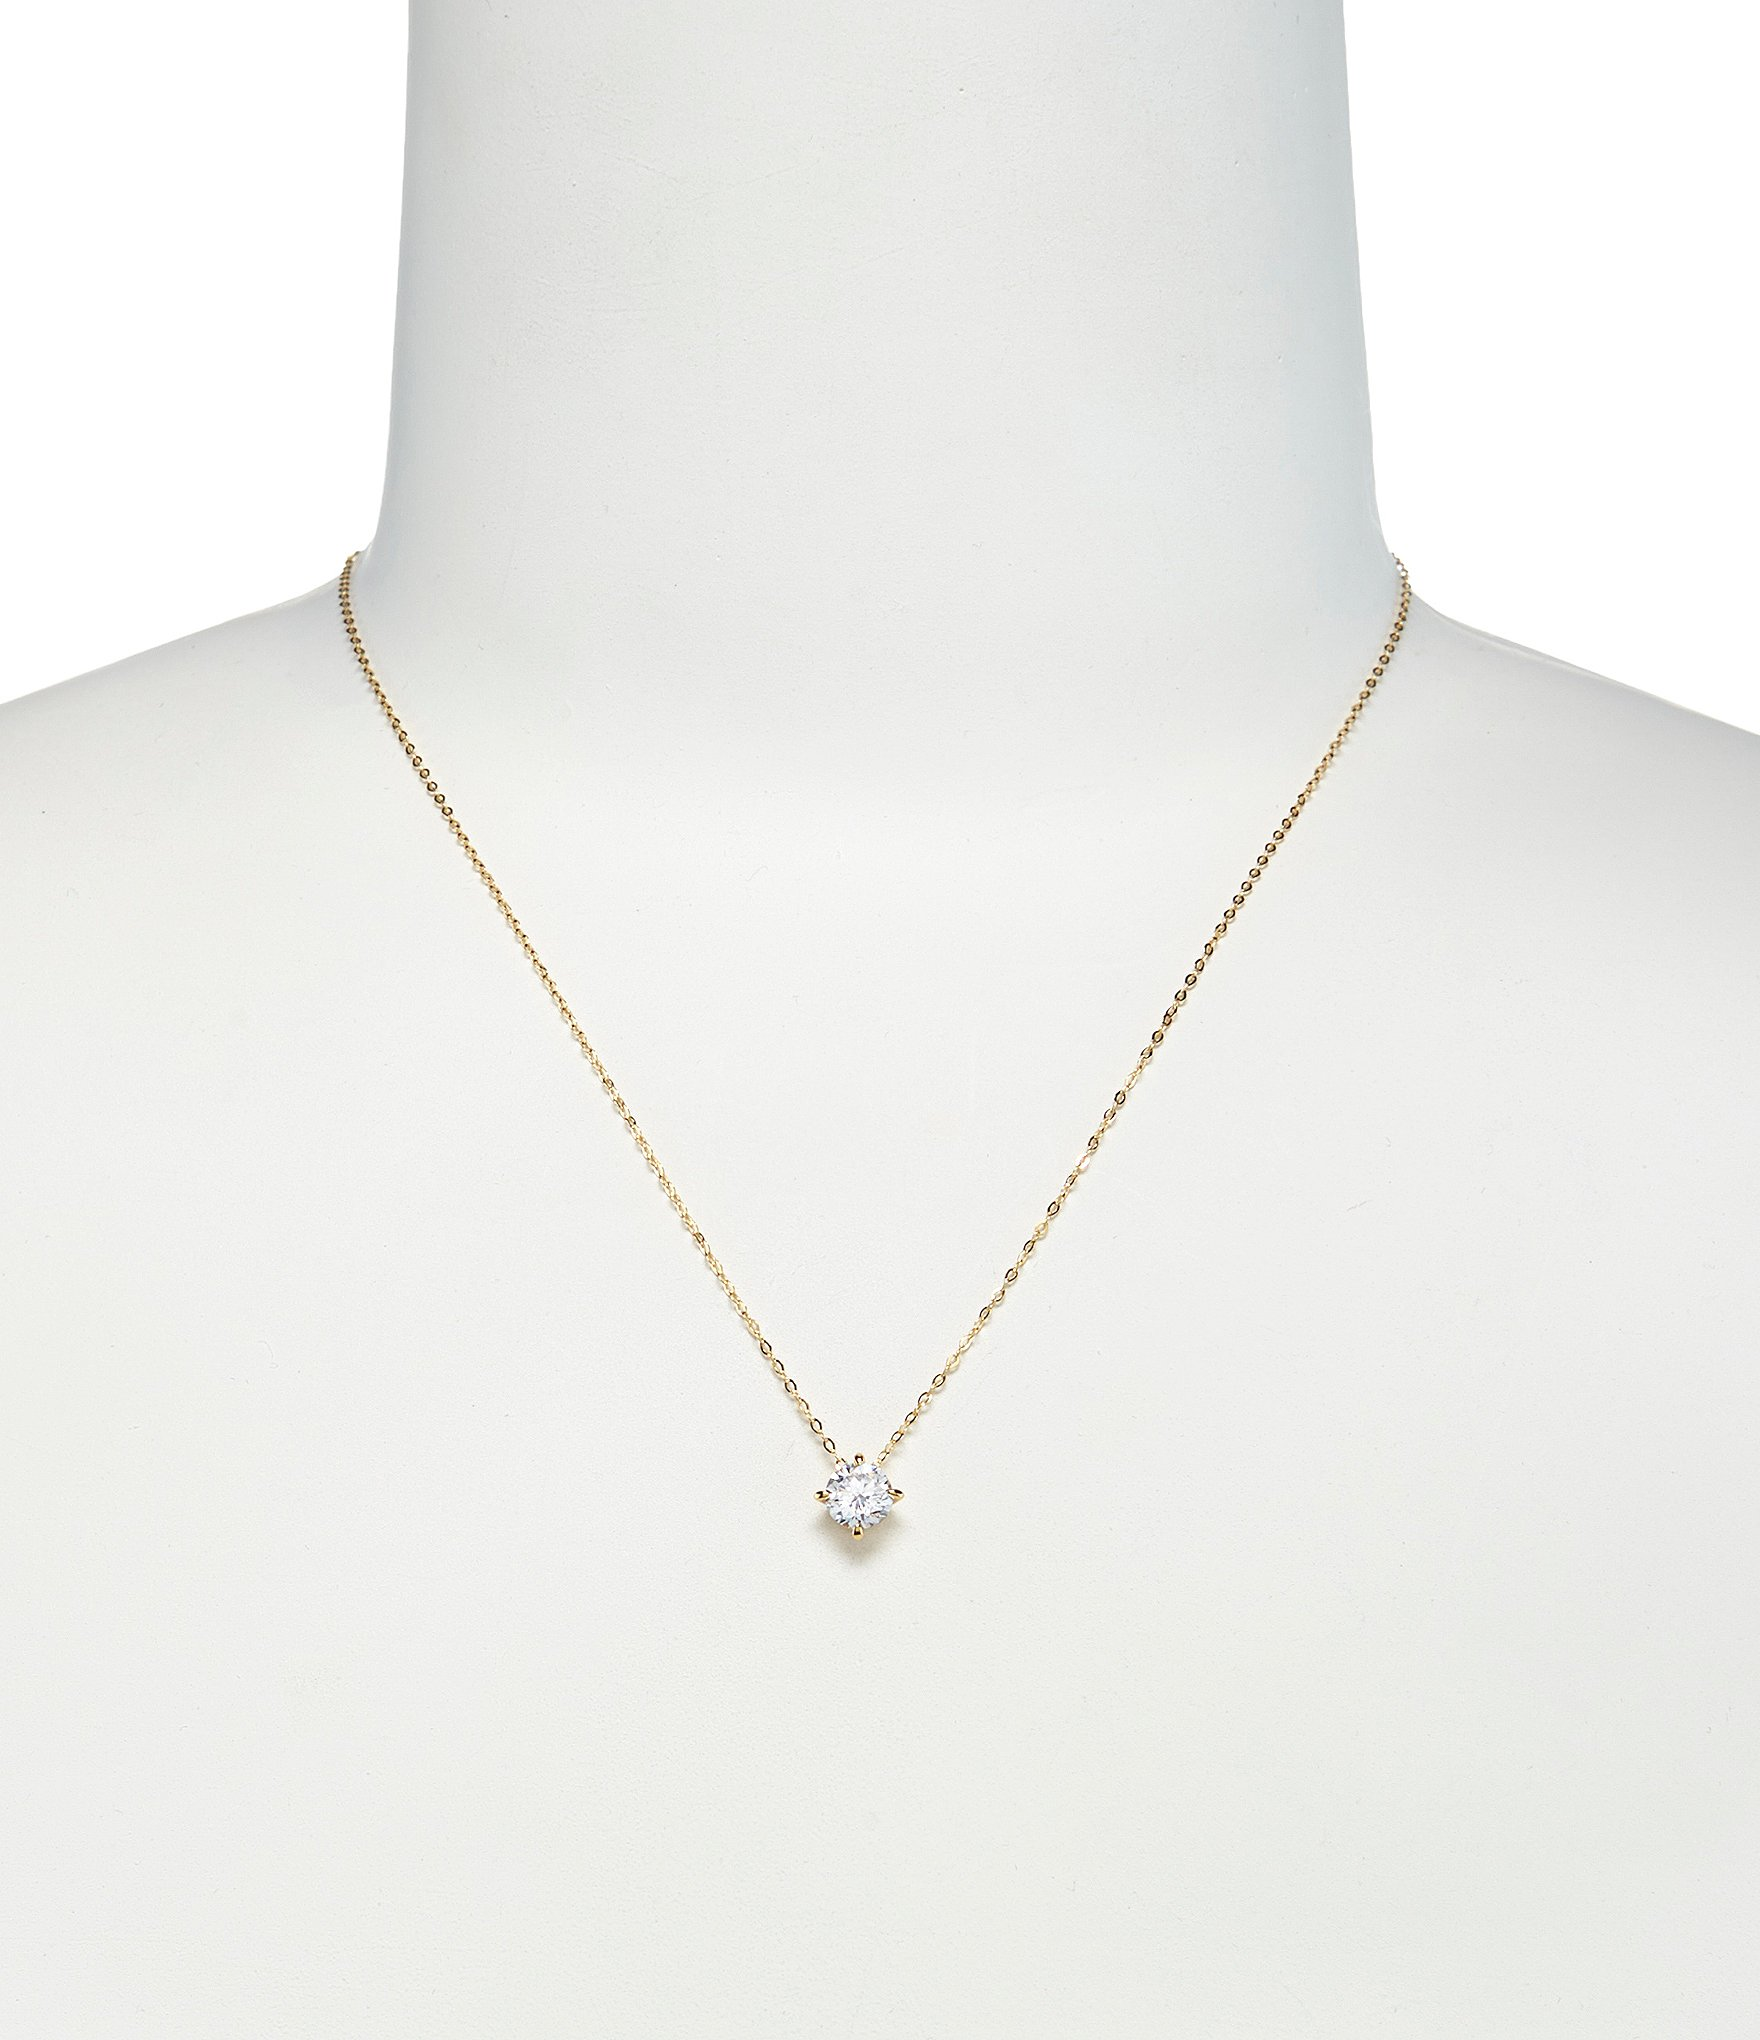 Floating Cubic Zirconia Pendant Necklace by Nadri